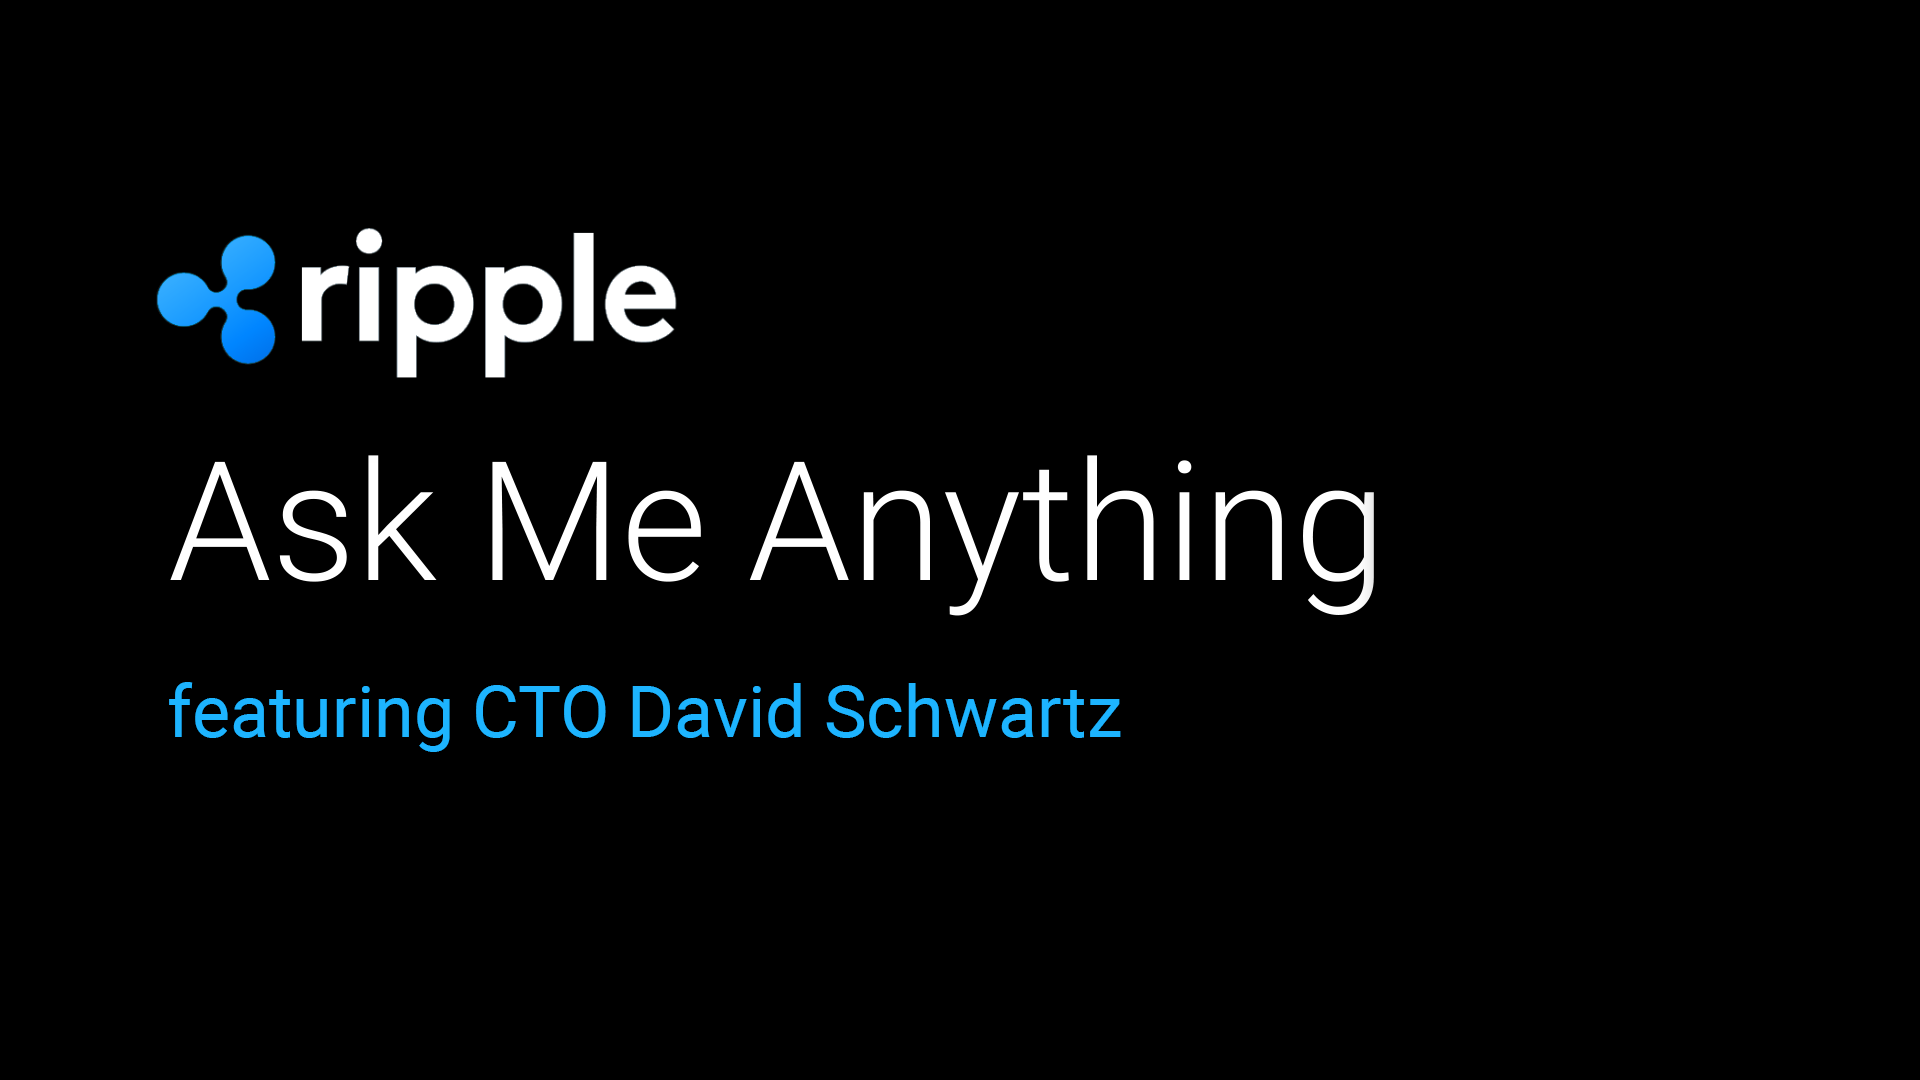 ripple AMA david schwartz